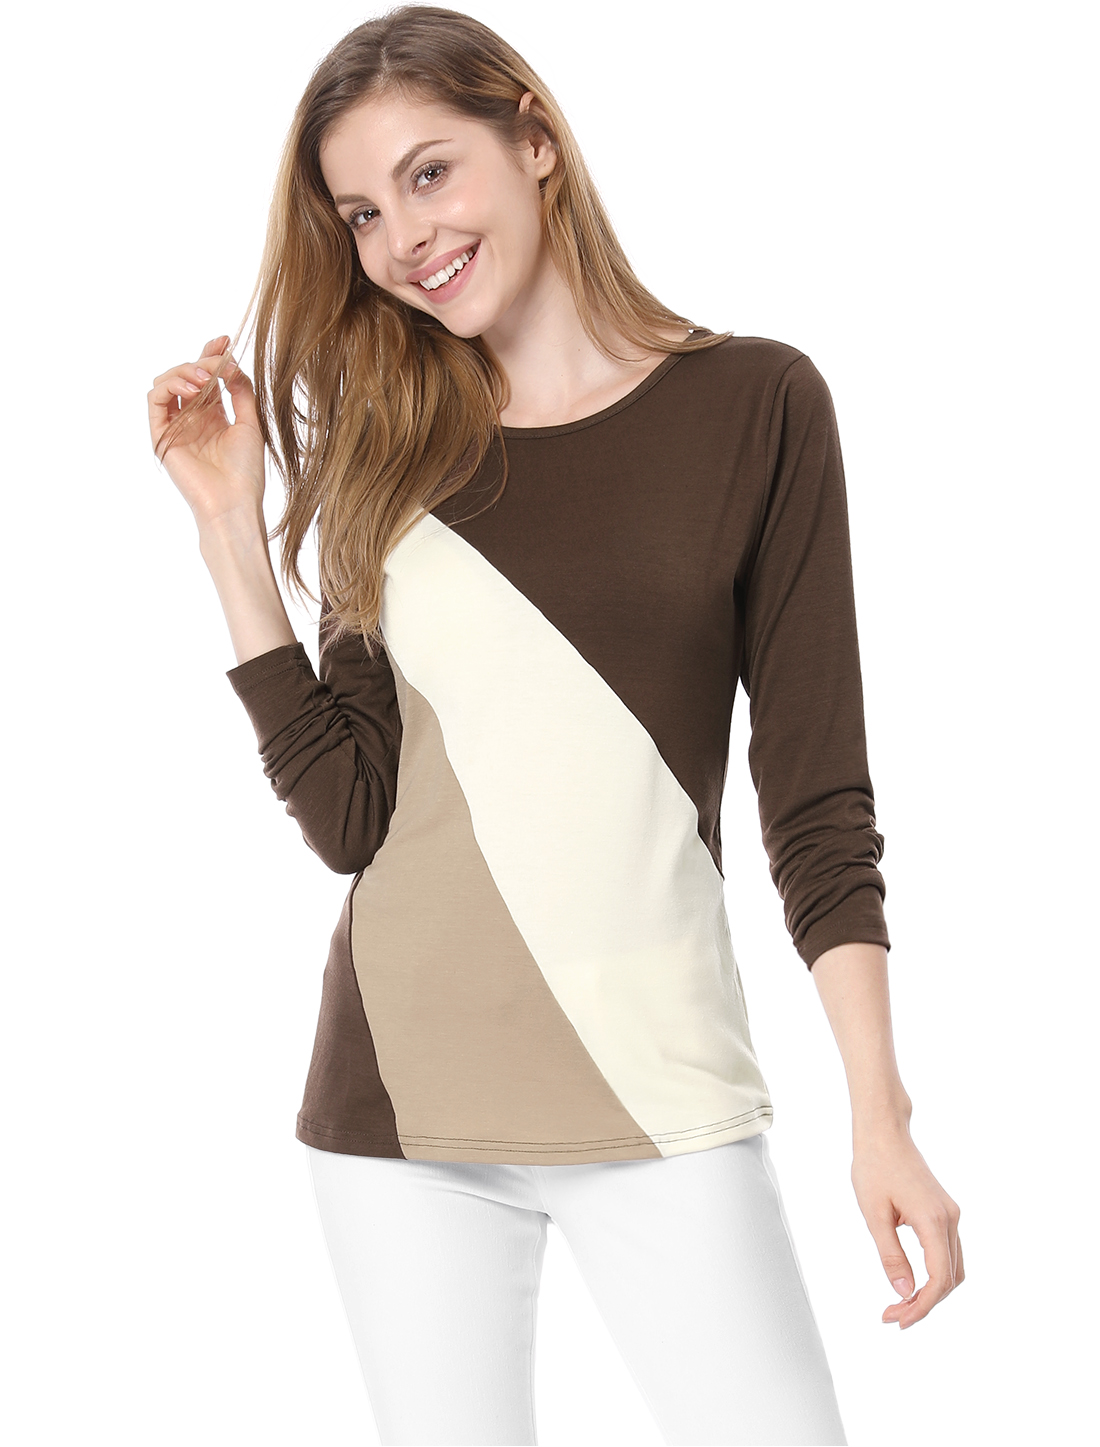 Women Color Block Round Neck Long Sleeve Slim T-Shirt Brown Beige M